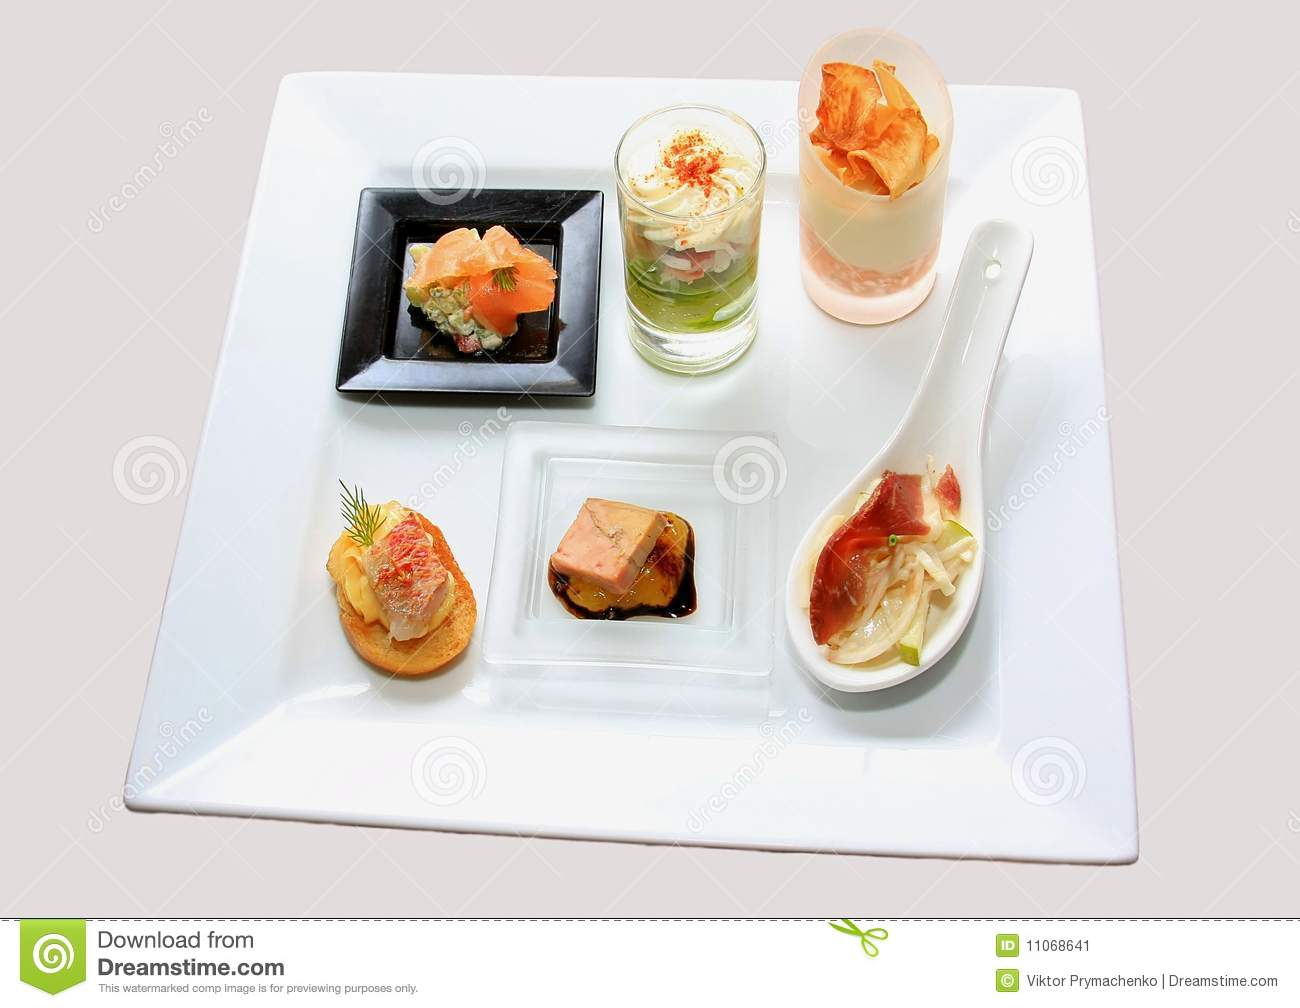 Catering canape stock image image 11068641 for Canape catering services